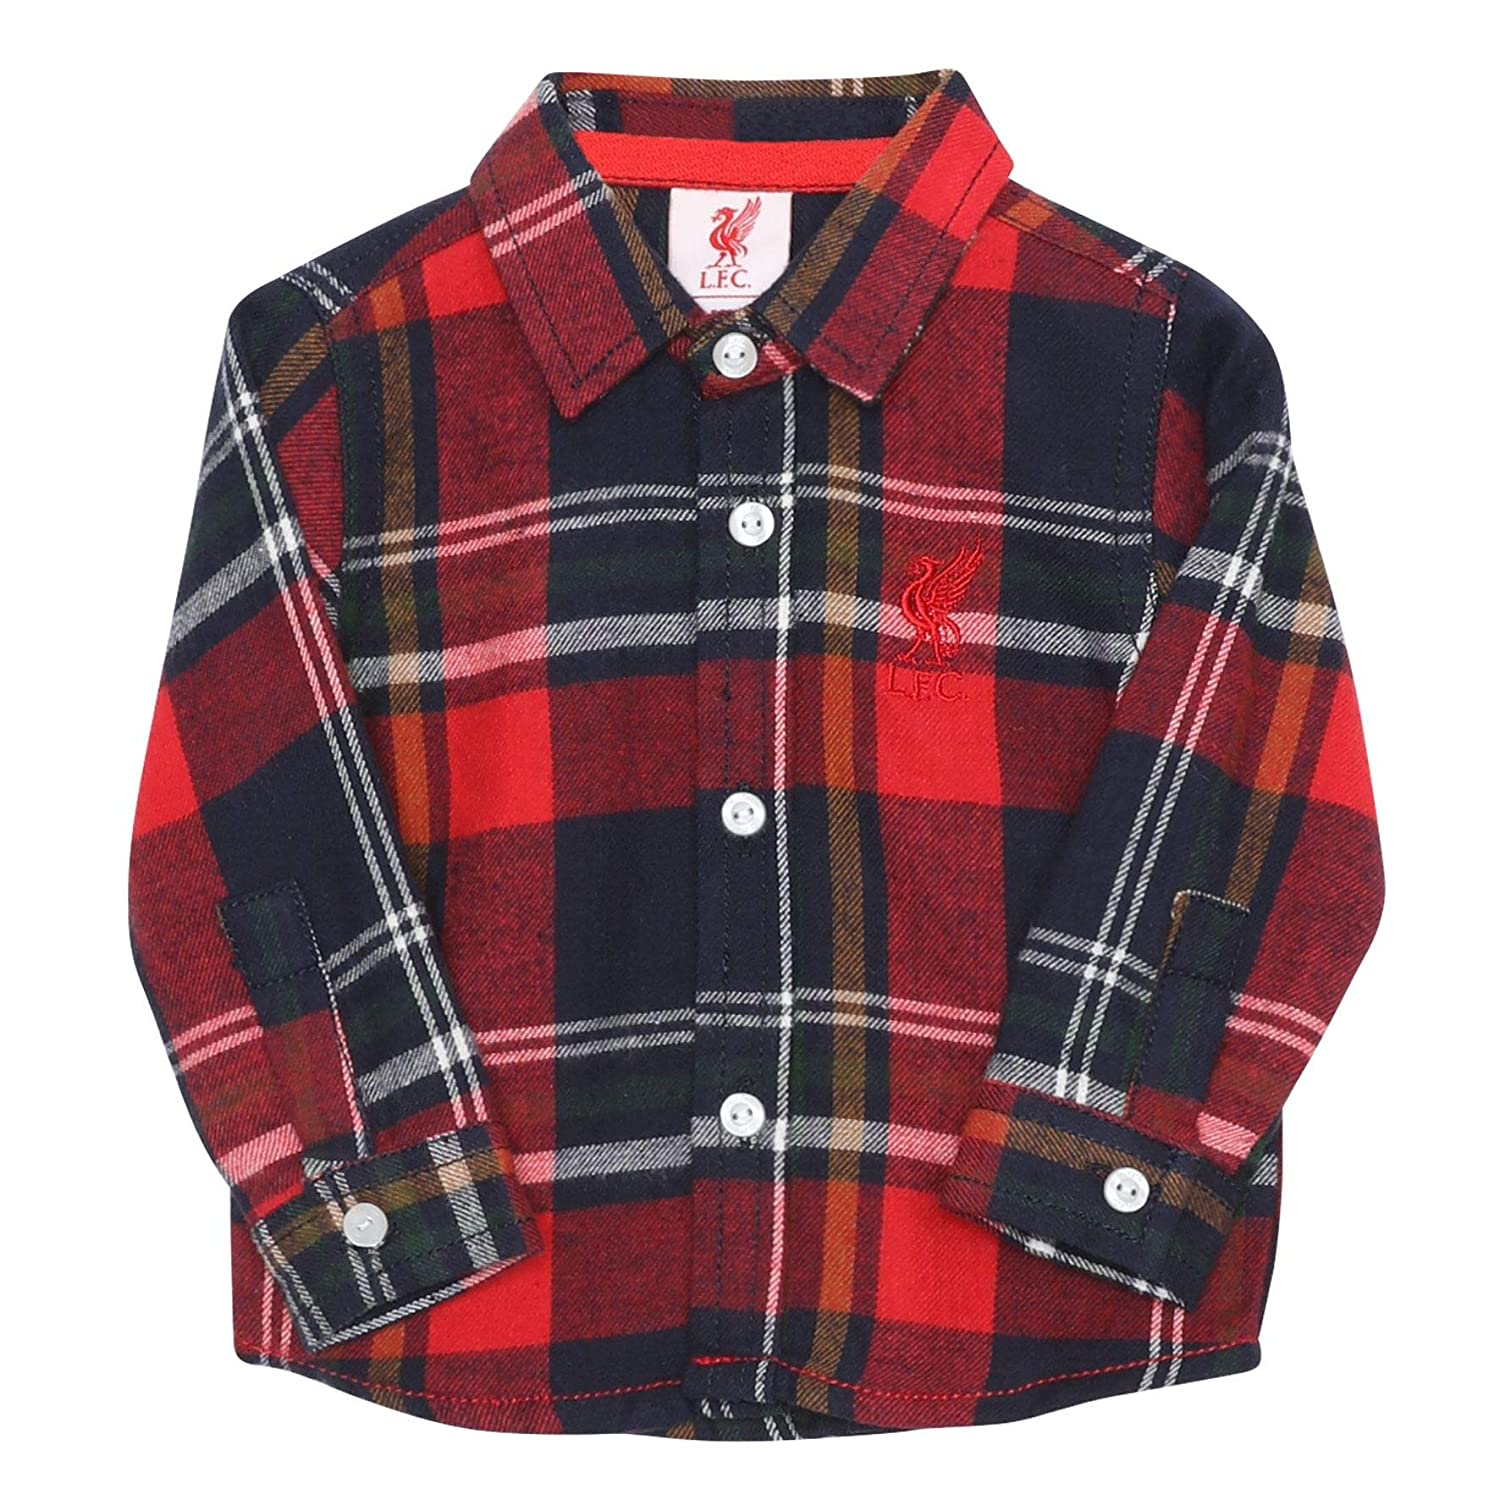 Liverpool FC Baby Navy Check Shirt LFC Official